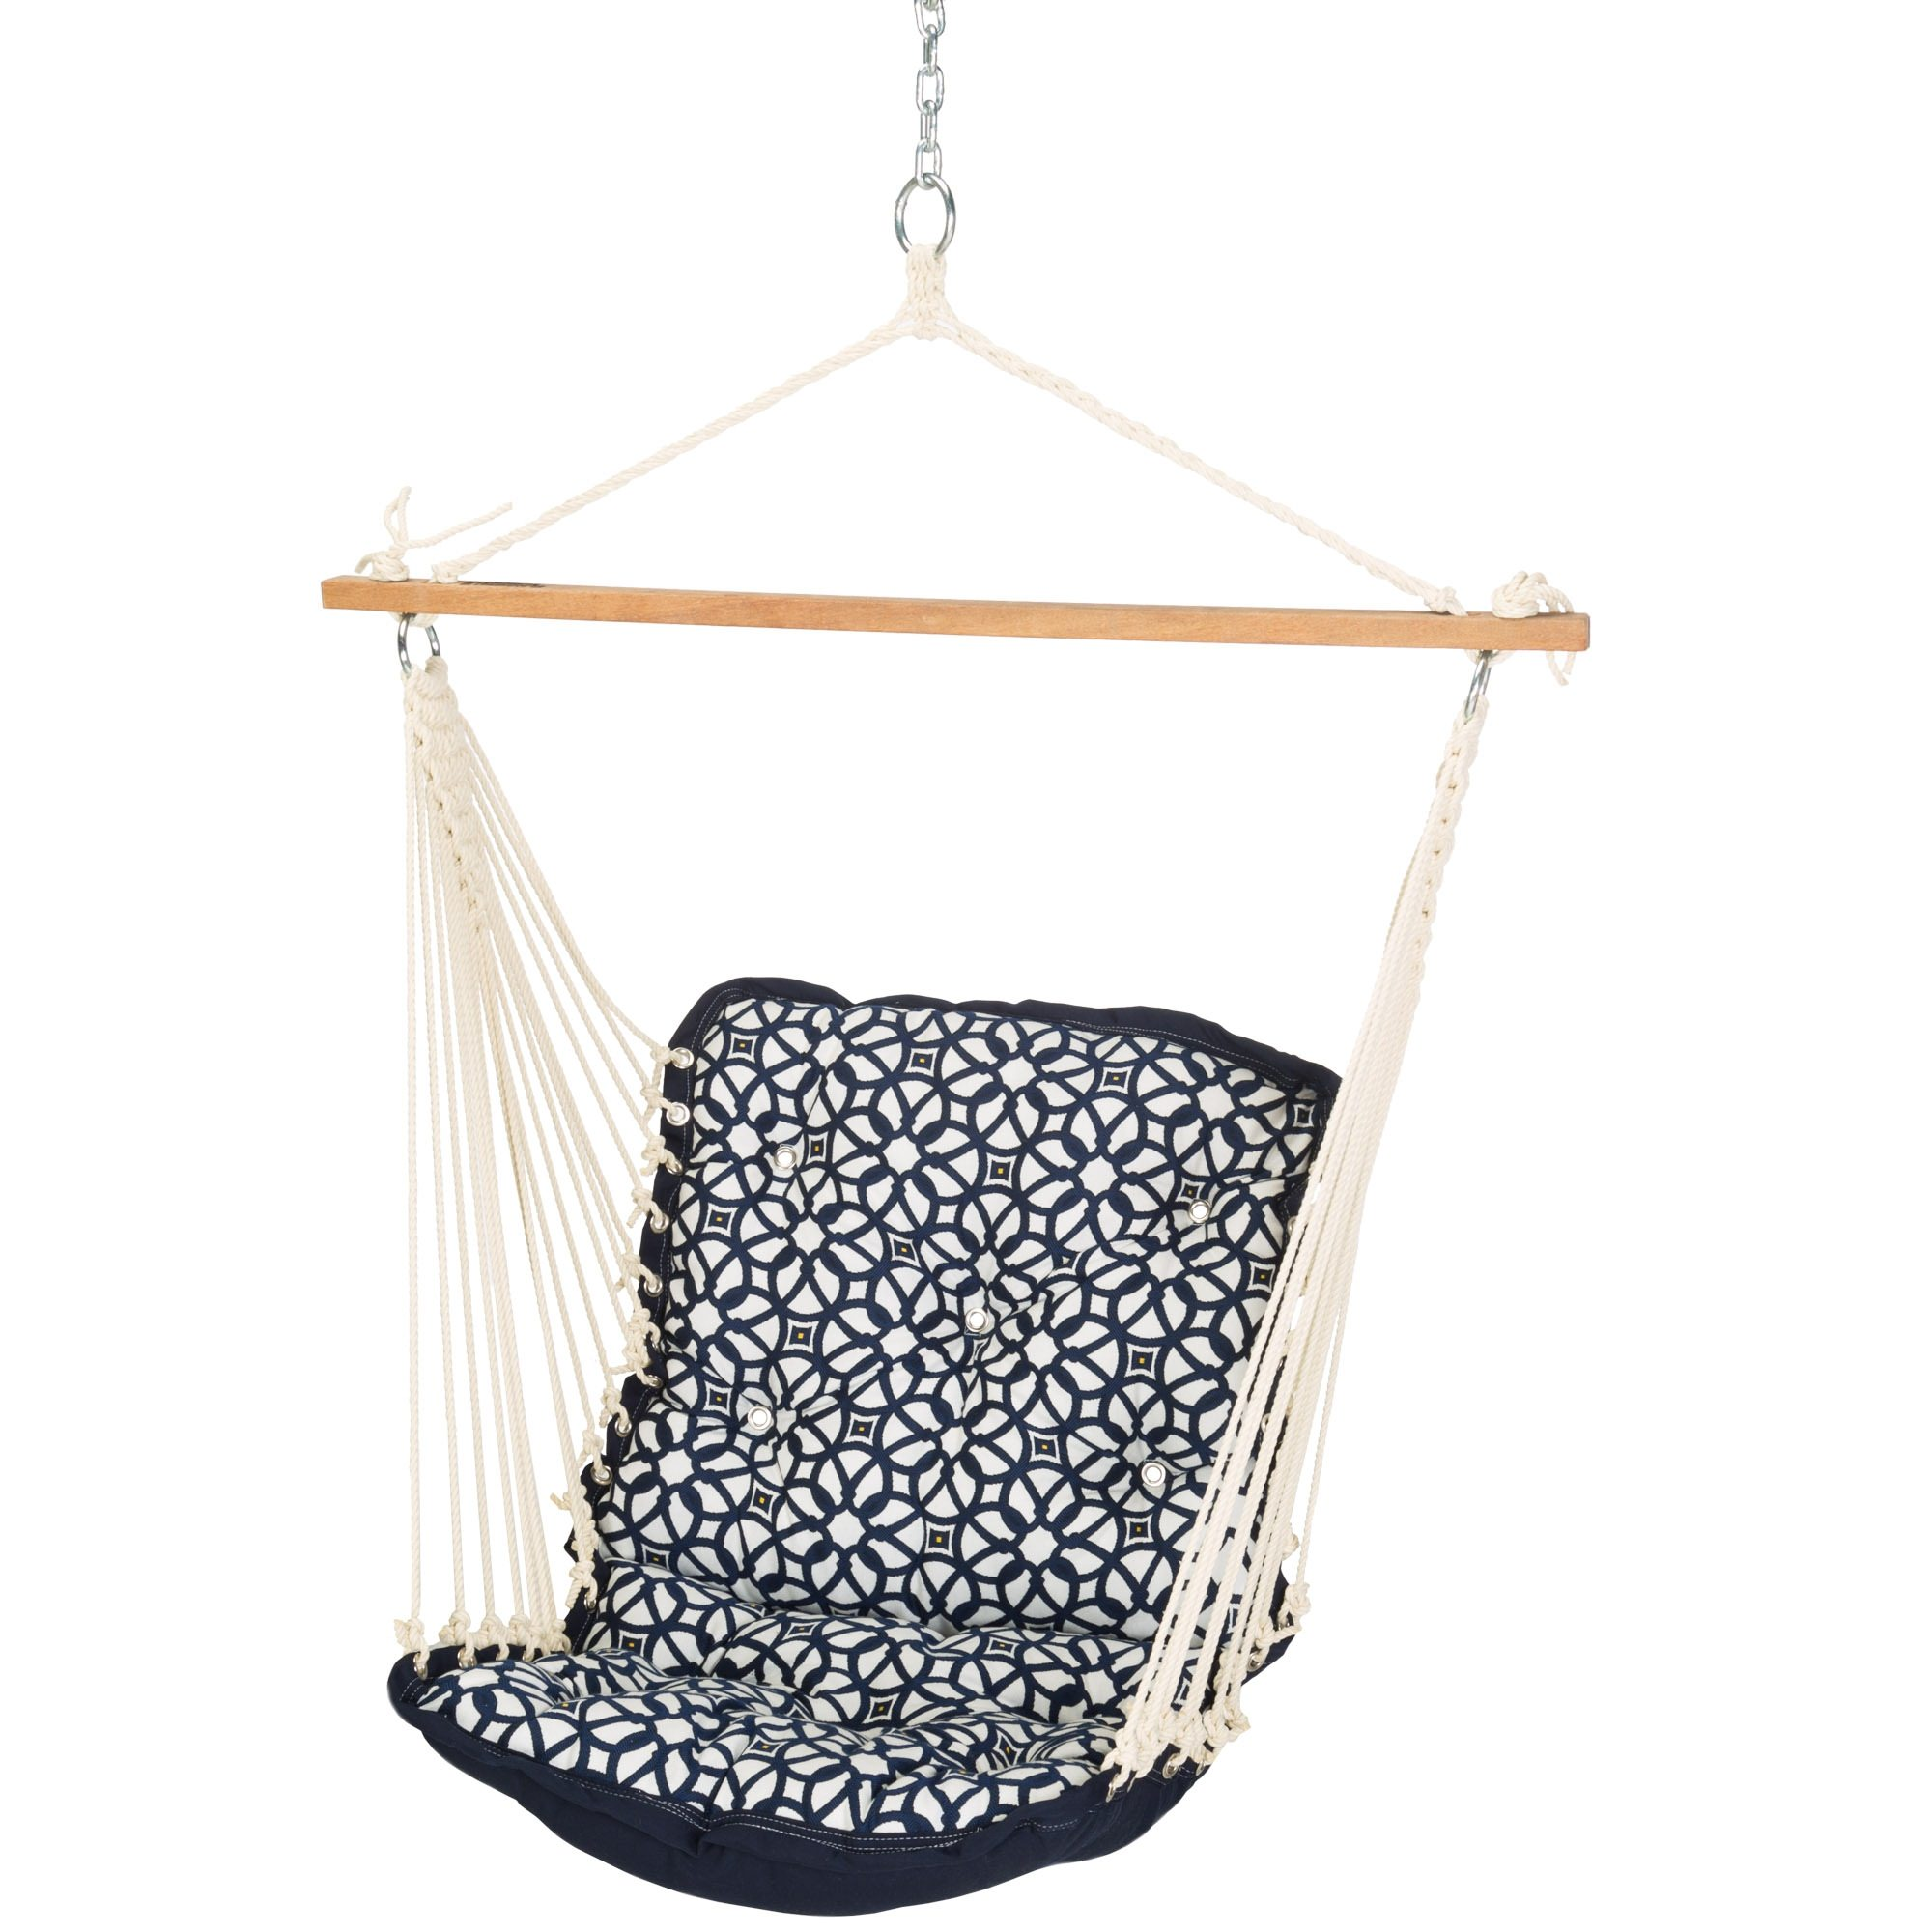 single person hammock chair old fashioned dining room chairs tufted swing